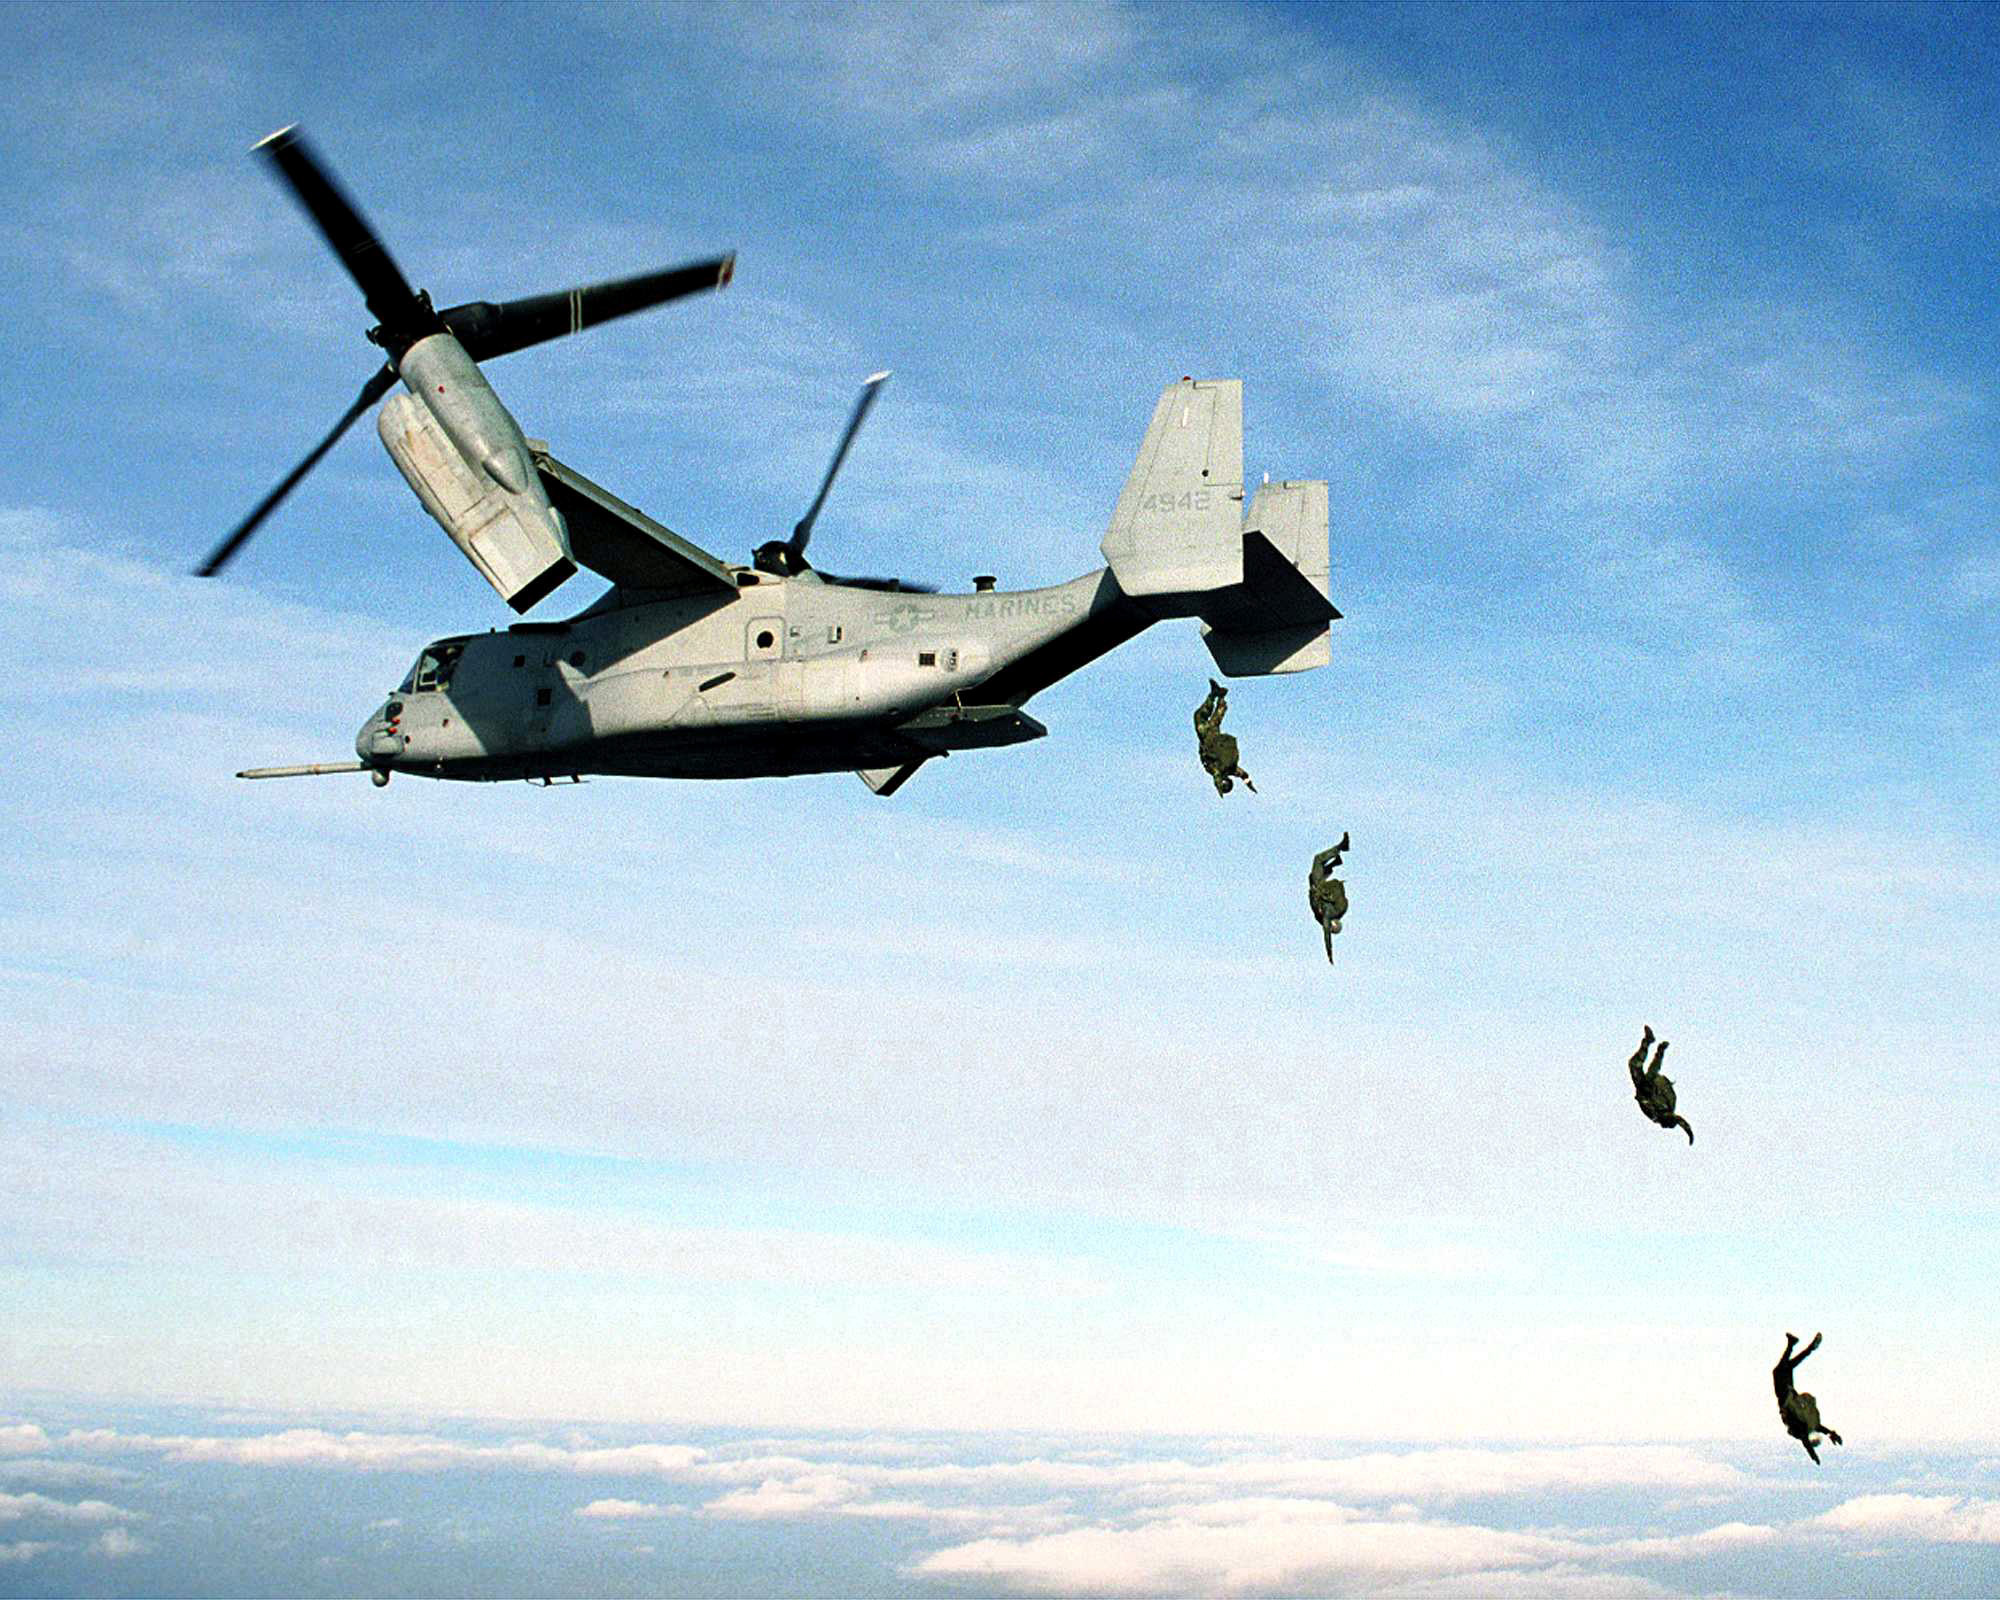 U.S. Marine Corps parachutists free fall from an MV-22 Osprey at 10,000 feet above the drop zone at Fort A.P. Hill, Va. on Jan. 17, 2000